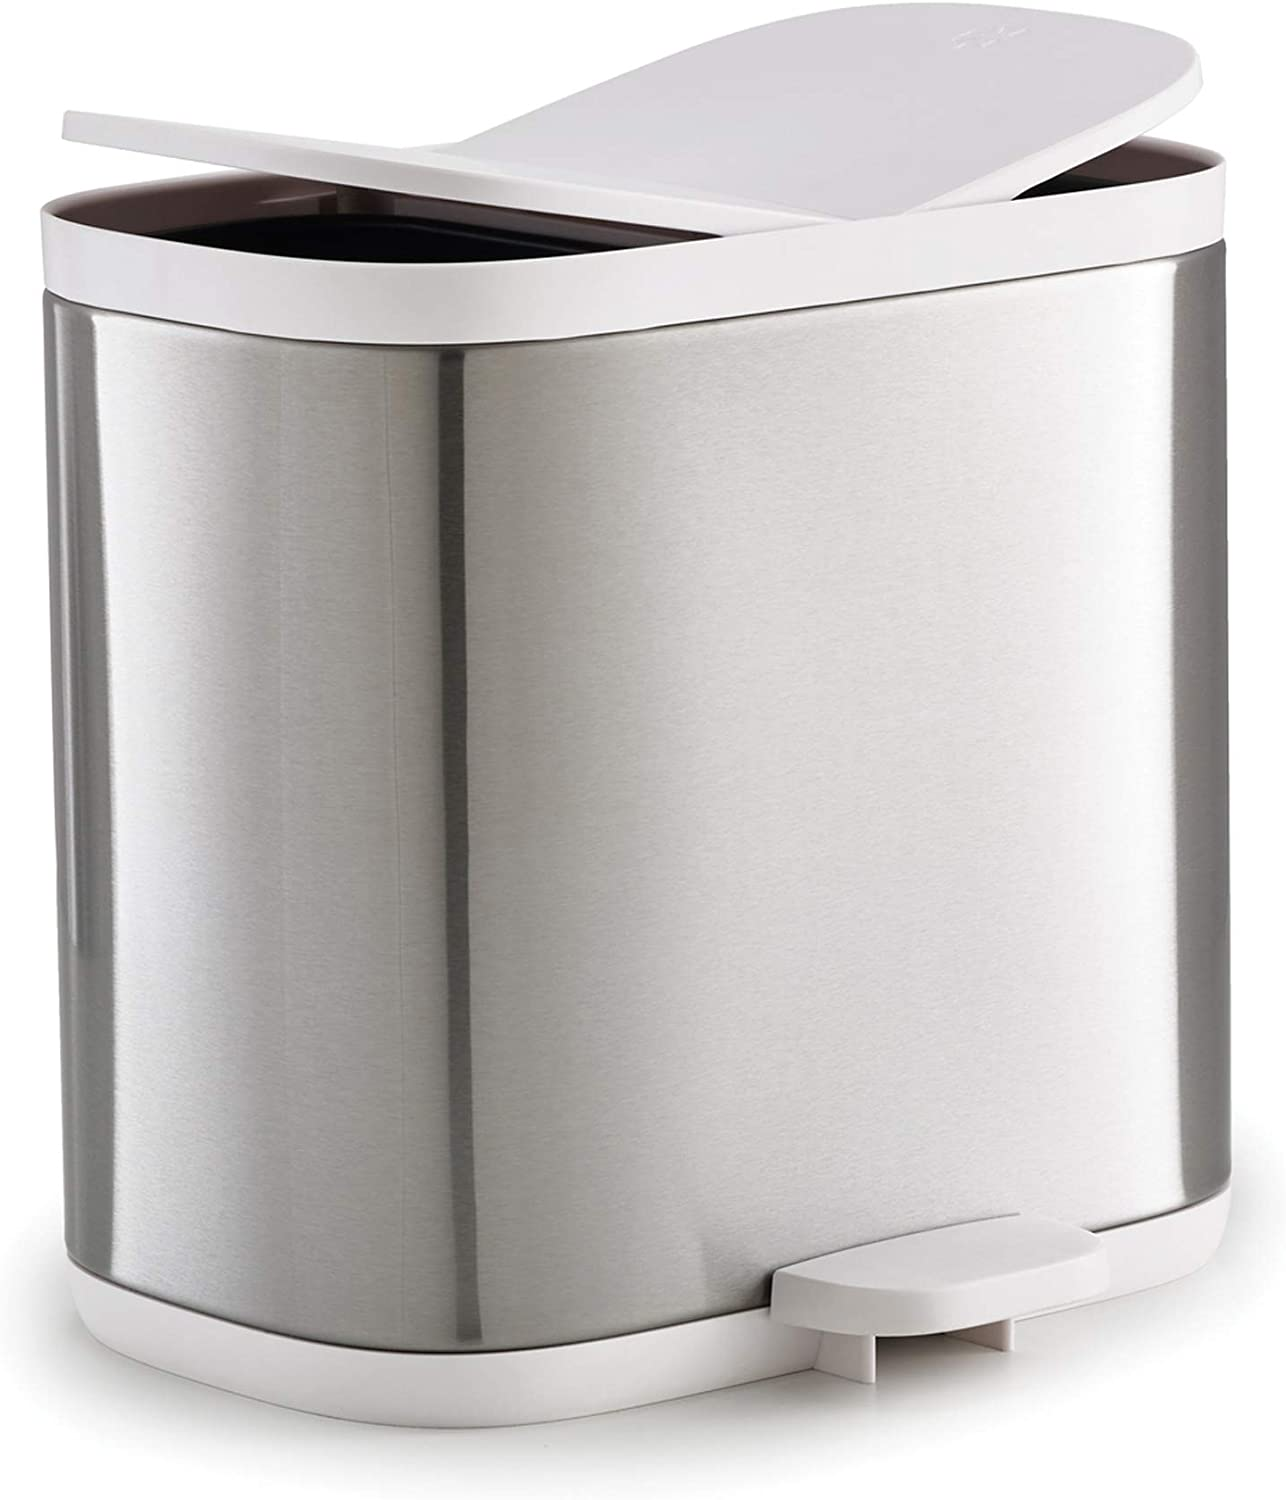 Joseph Joseph Split Step Trash Can Recycle Bin Dual Compartments Removable Buckets, 1.6 Gallon/6 Liter, Stainless Steel